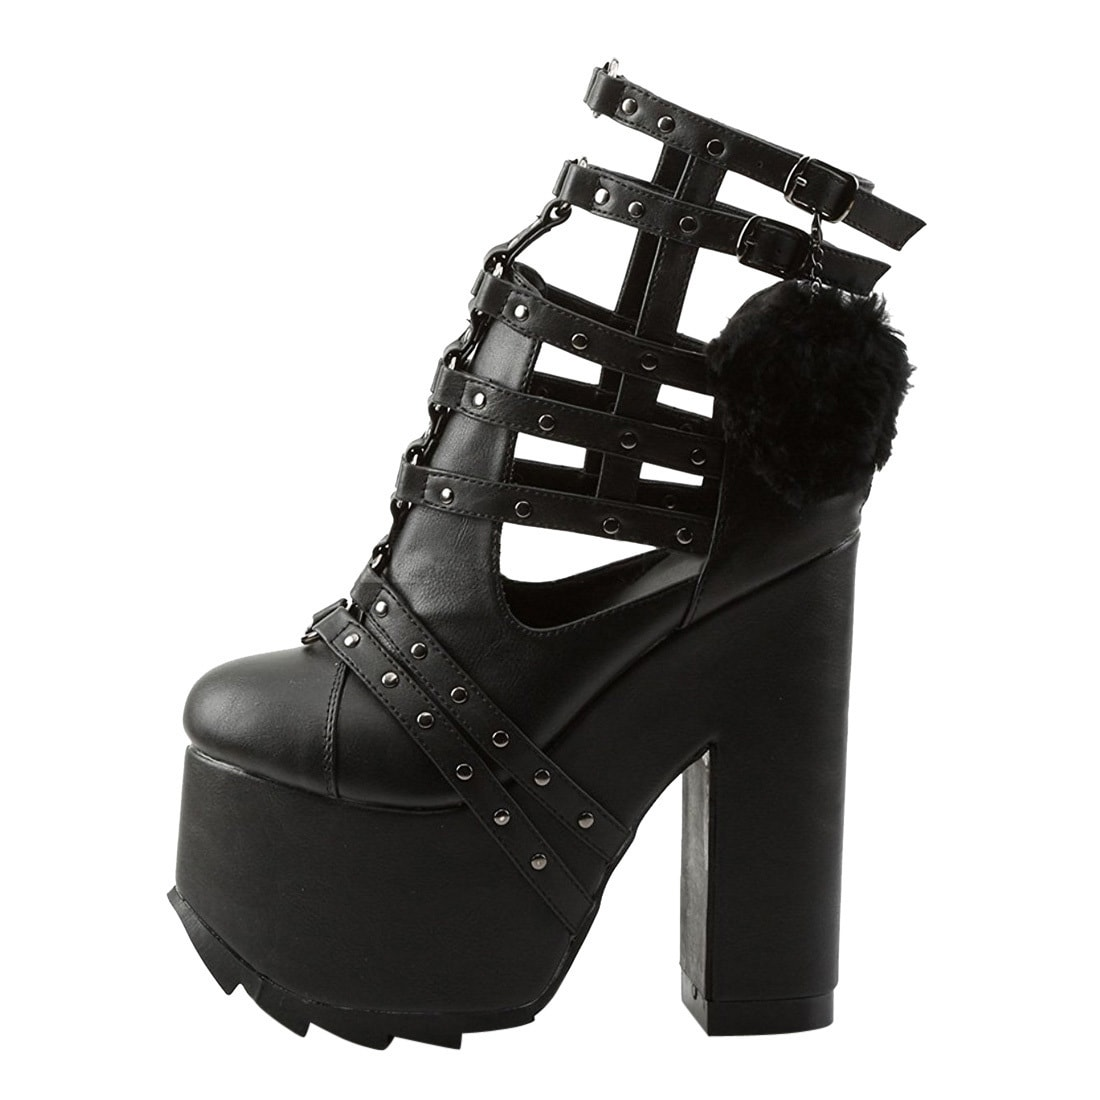 6a320b23fbc Shop Demonia Cramps-05 Women s Platform Buckle Straps Block High Heel Caged  Sandals - Free Shipping Today - Overstock - 16502335